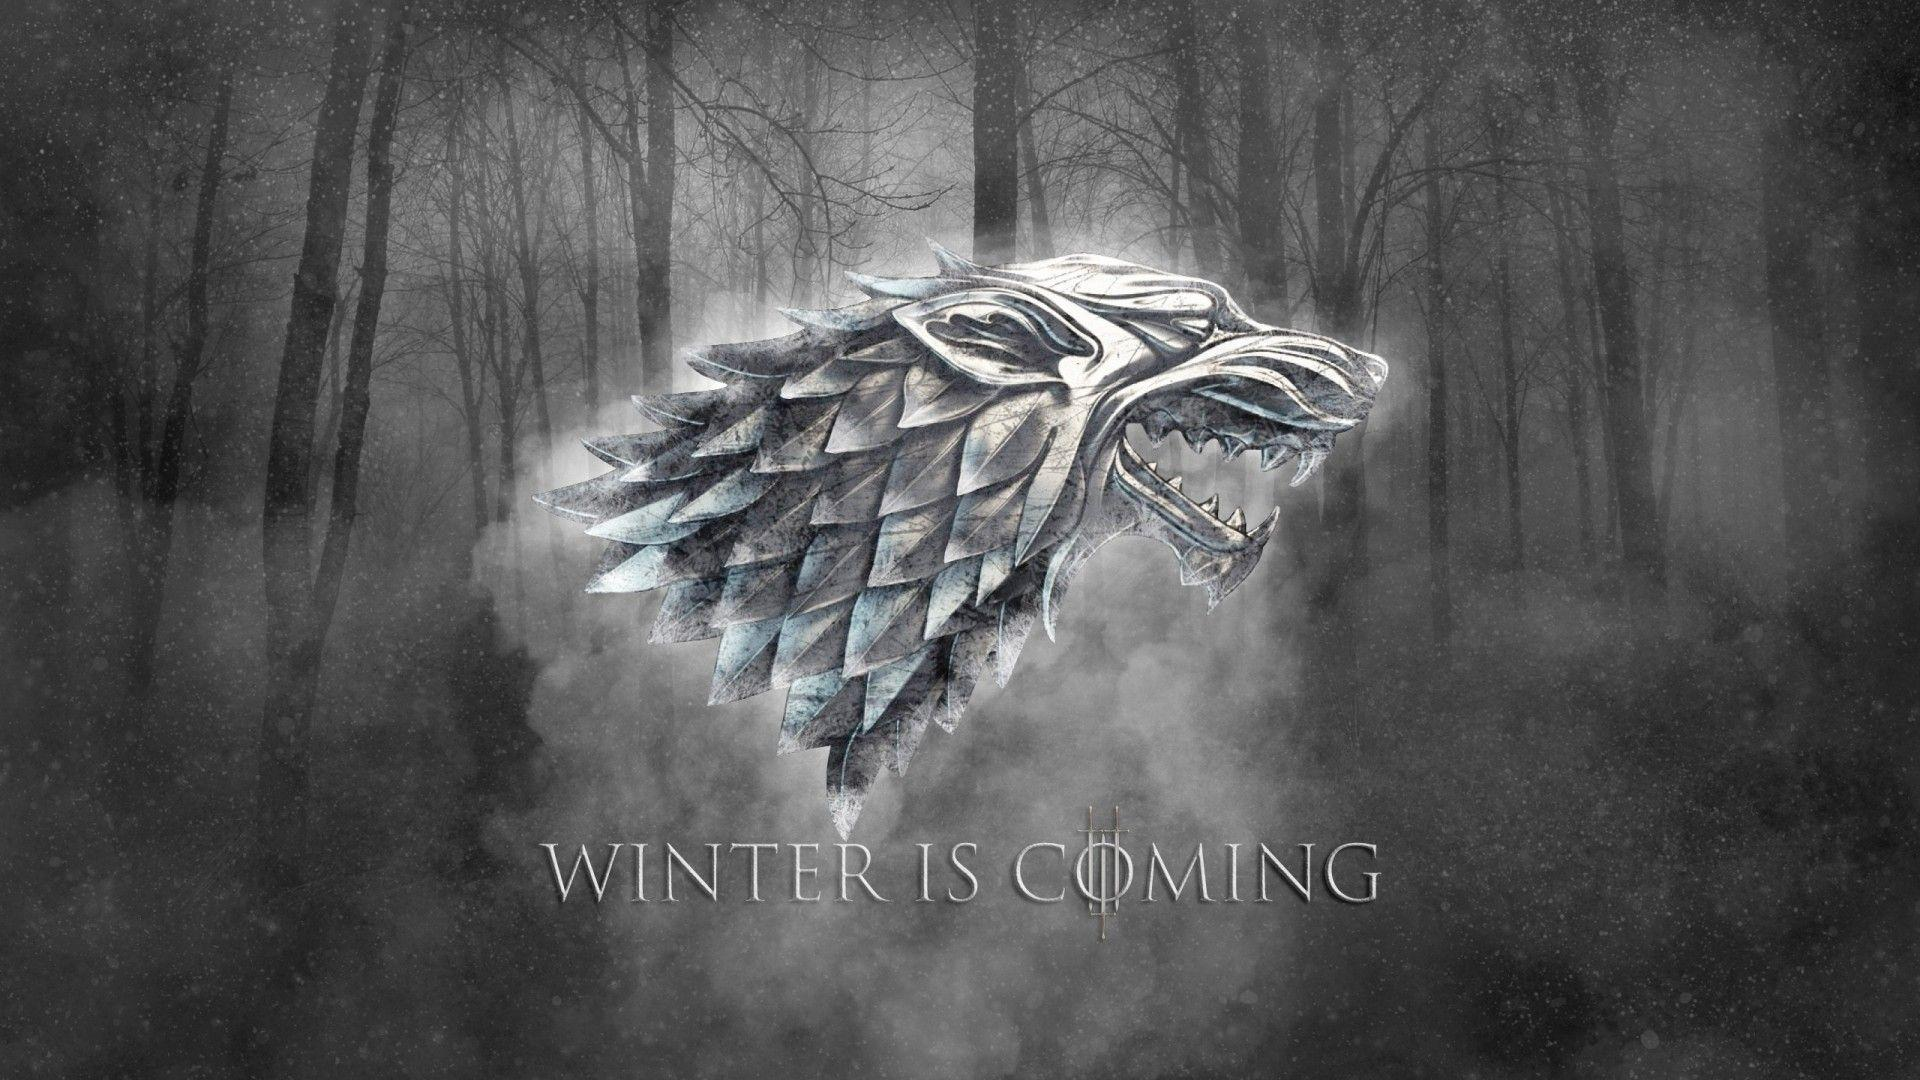 Game Of Thrones Stark Wallpapers Top Free Game Of Thrones Stark